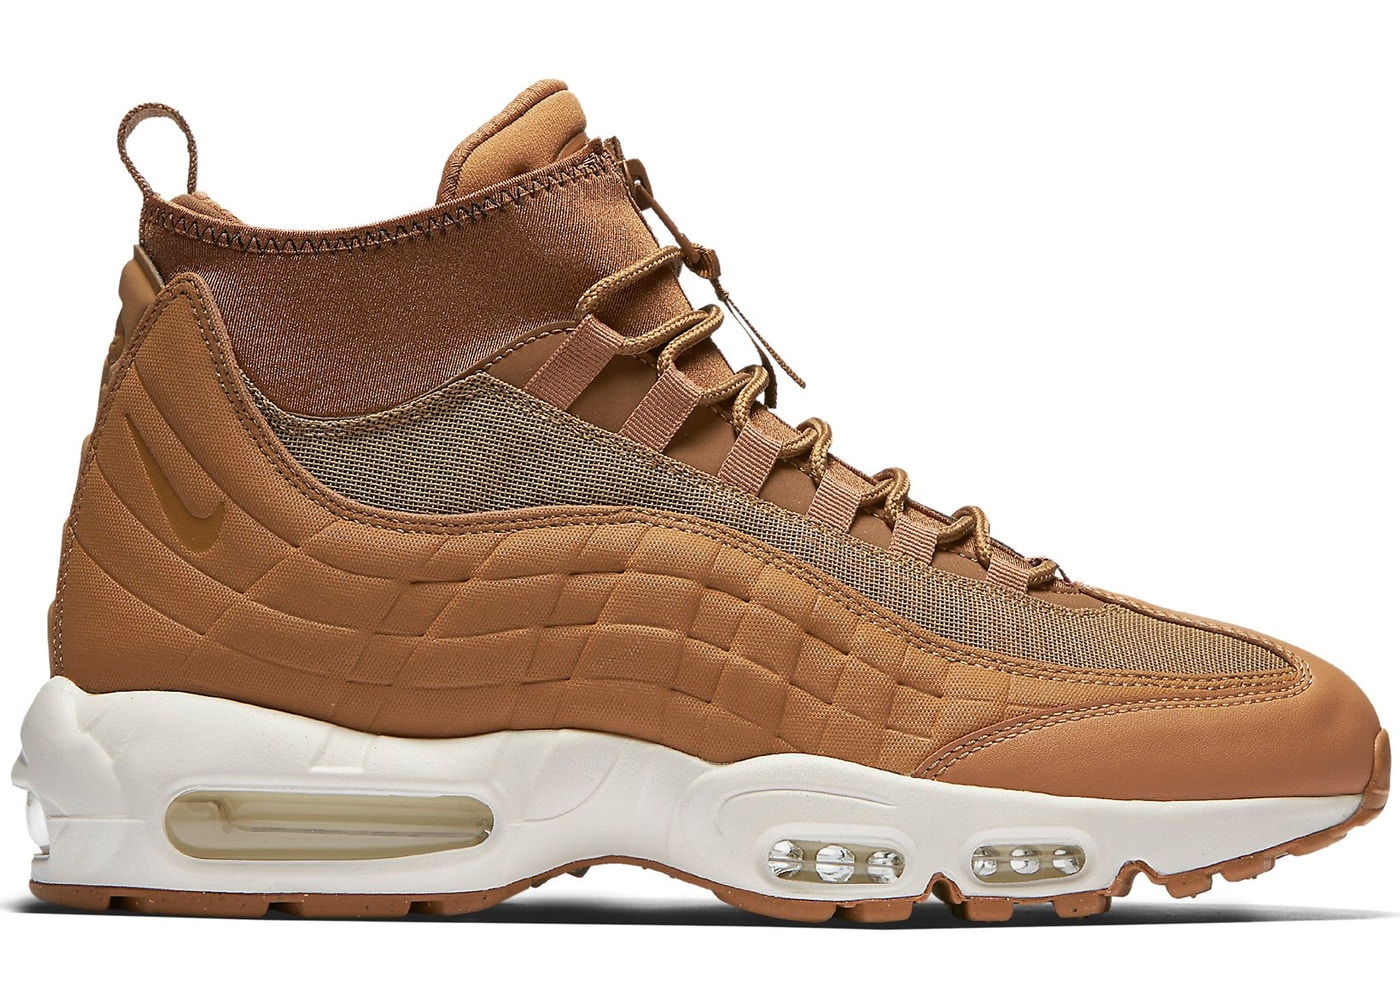 separation shoes af391 6ee88 Air Max 95 Sneakerboot Flax (2017)